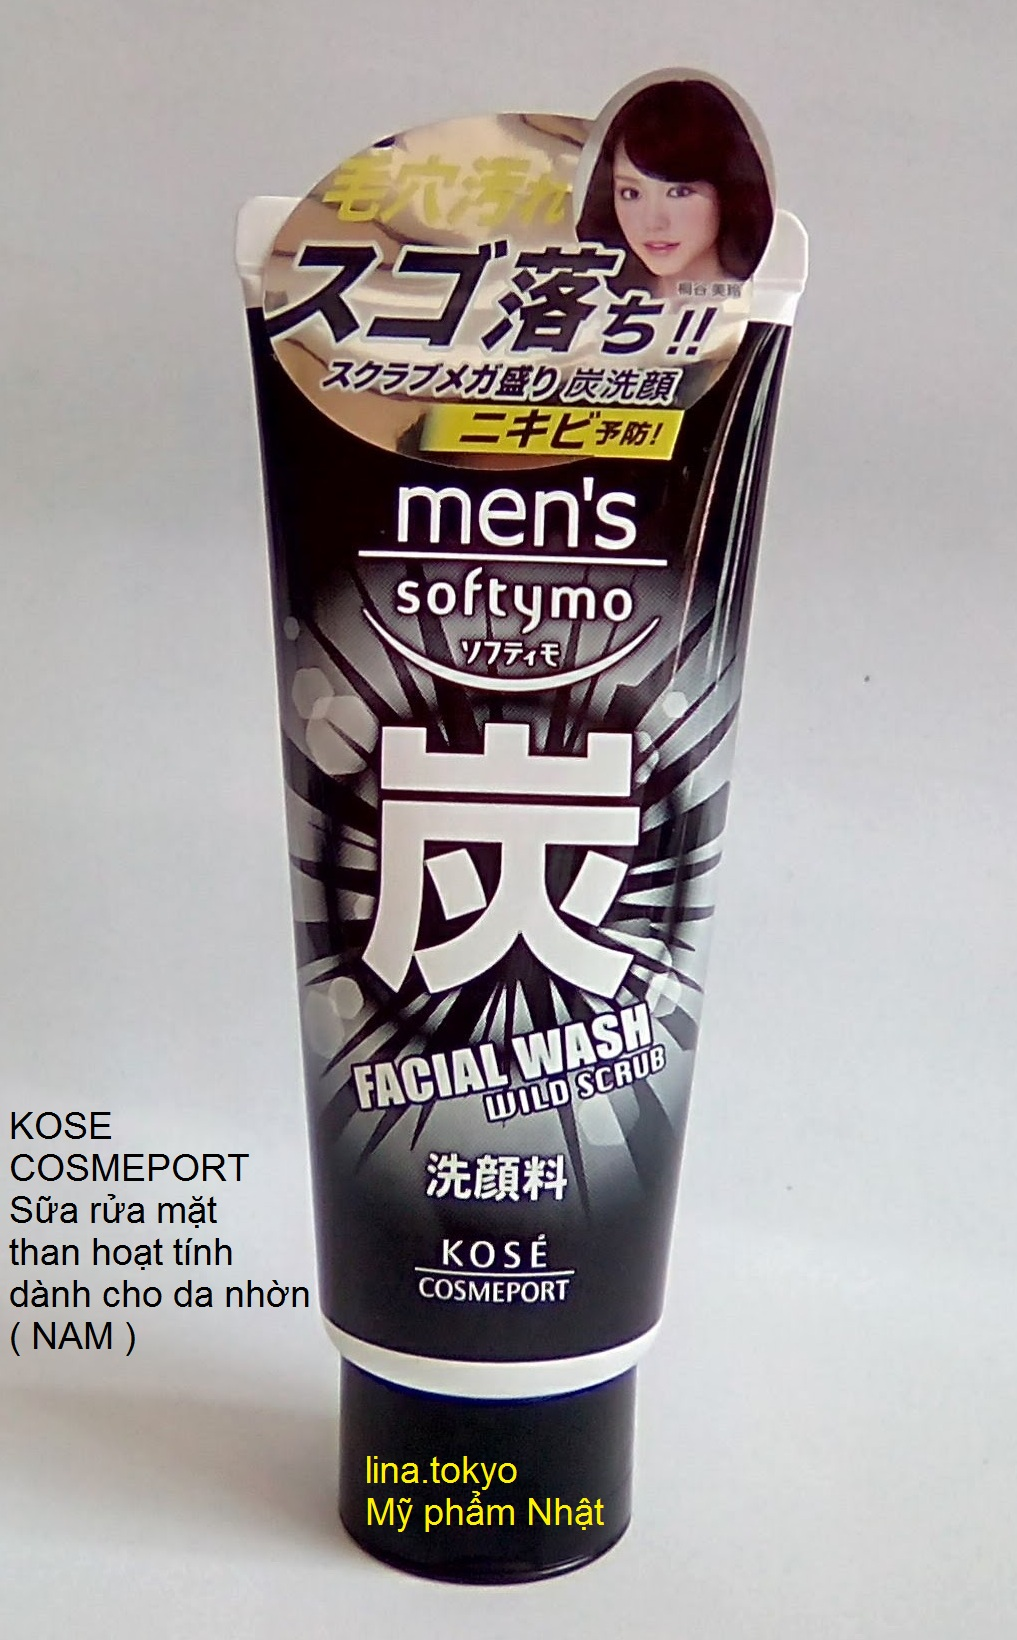 Ks5003 facial wash (Charcoal)